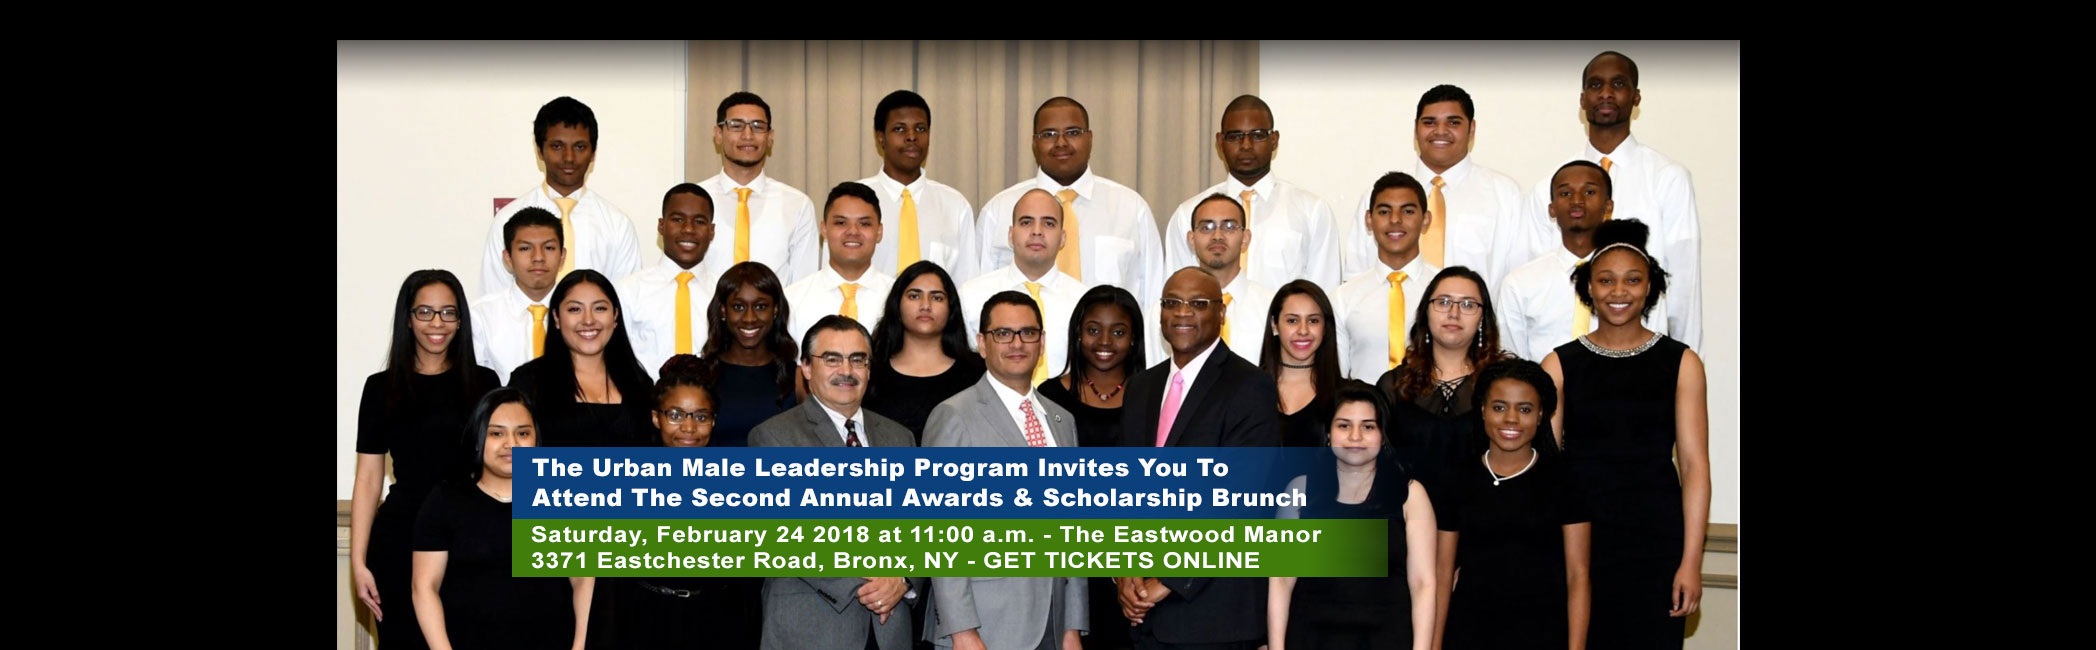 Urban Male Leadership Program Scholarship Fundraiser